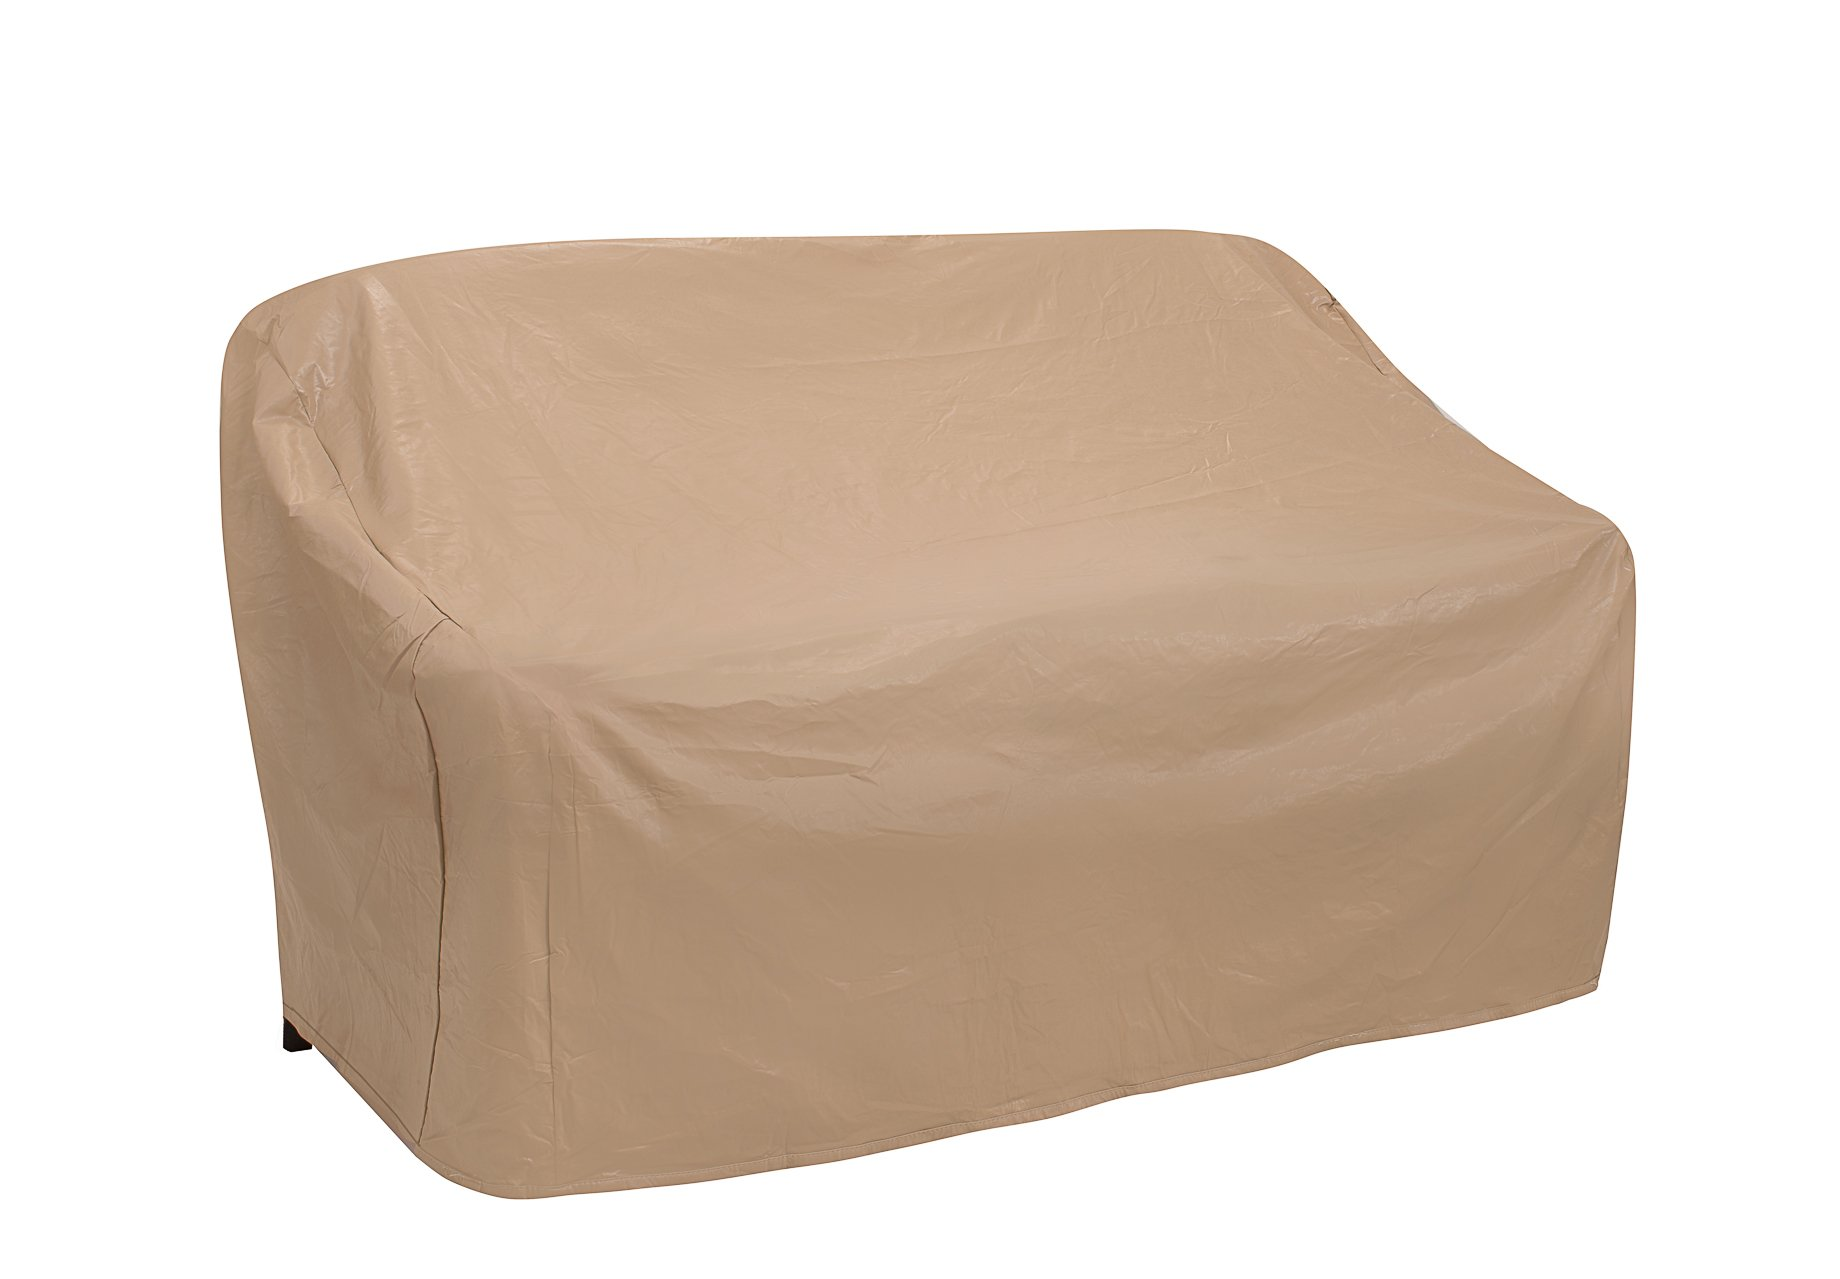 Protective Covers Weatherproof 2 Seat Wicker/Rattan Sofa Cover, X Large, Tan